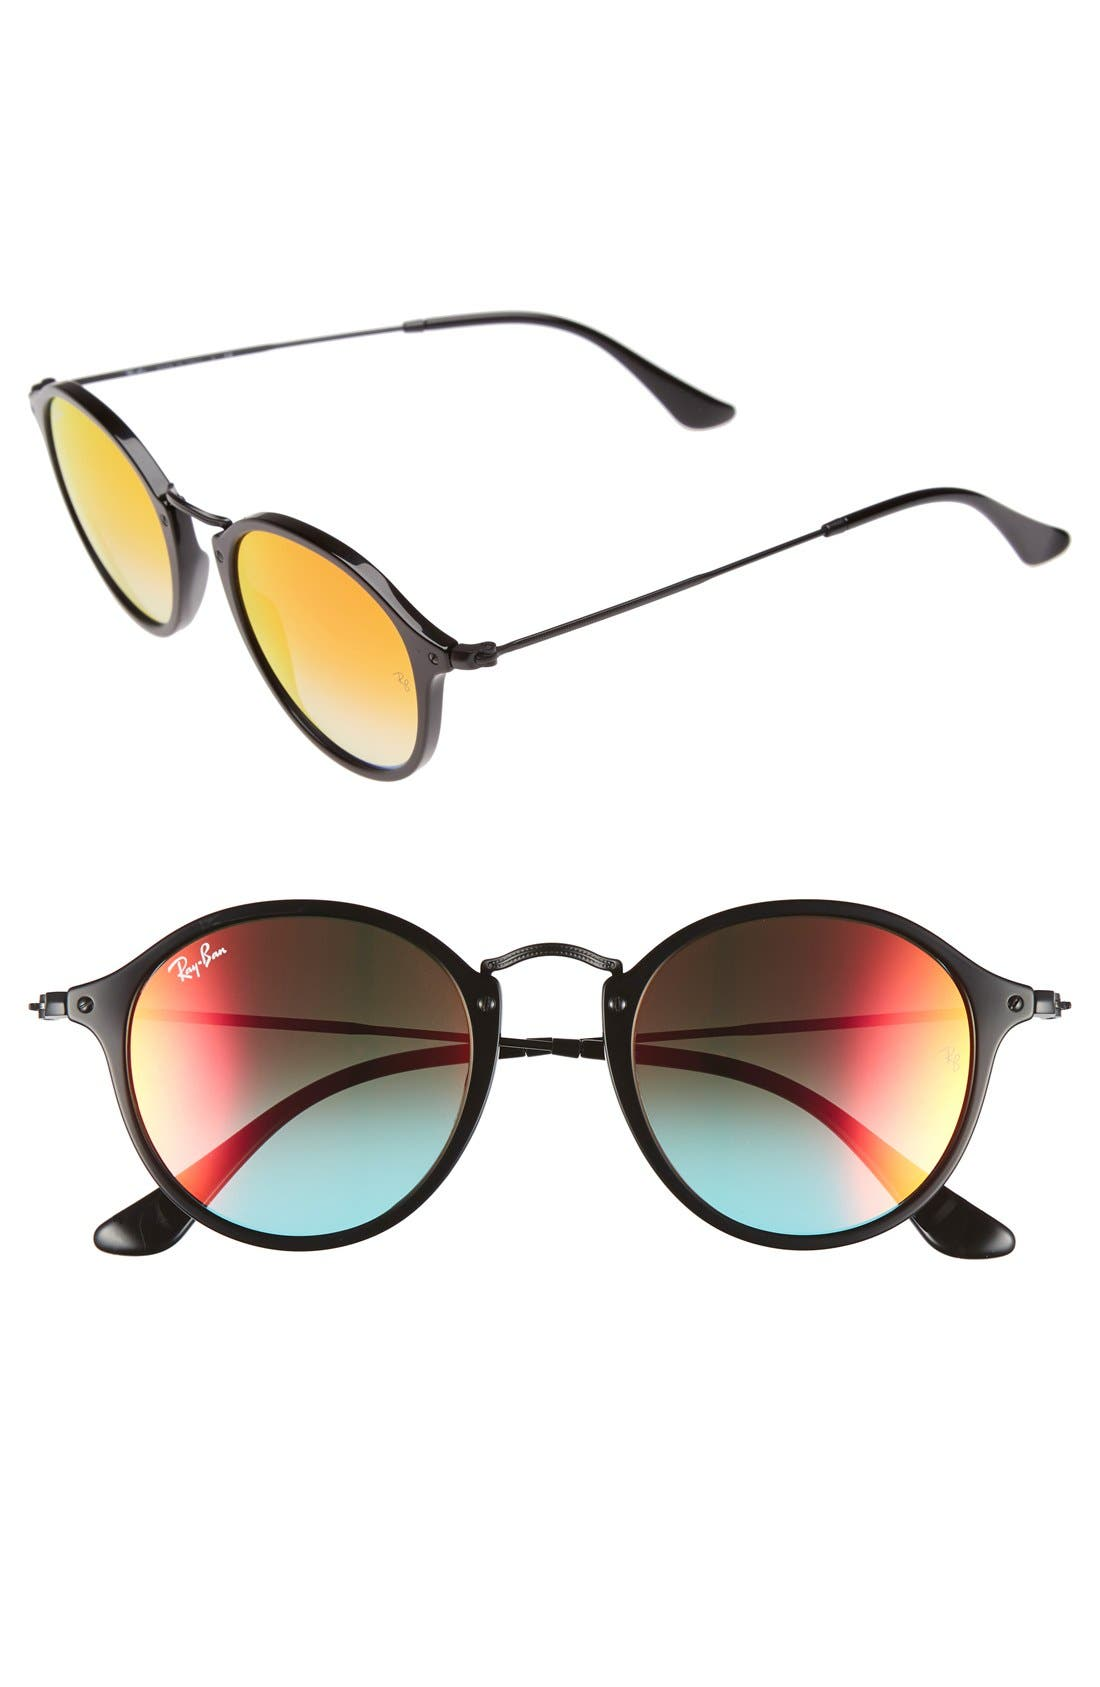 Icons 49mm Round Sunglasses,                         Main,                         color, Black/ Red